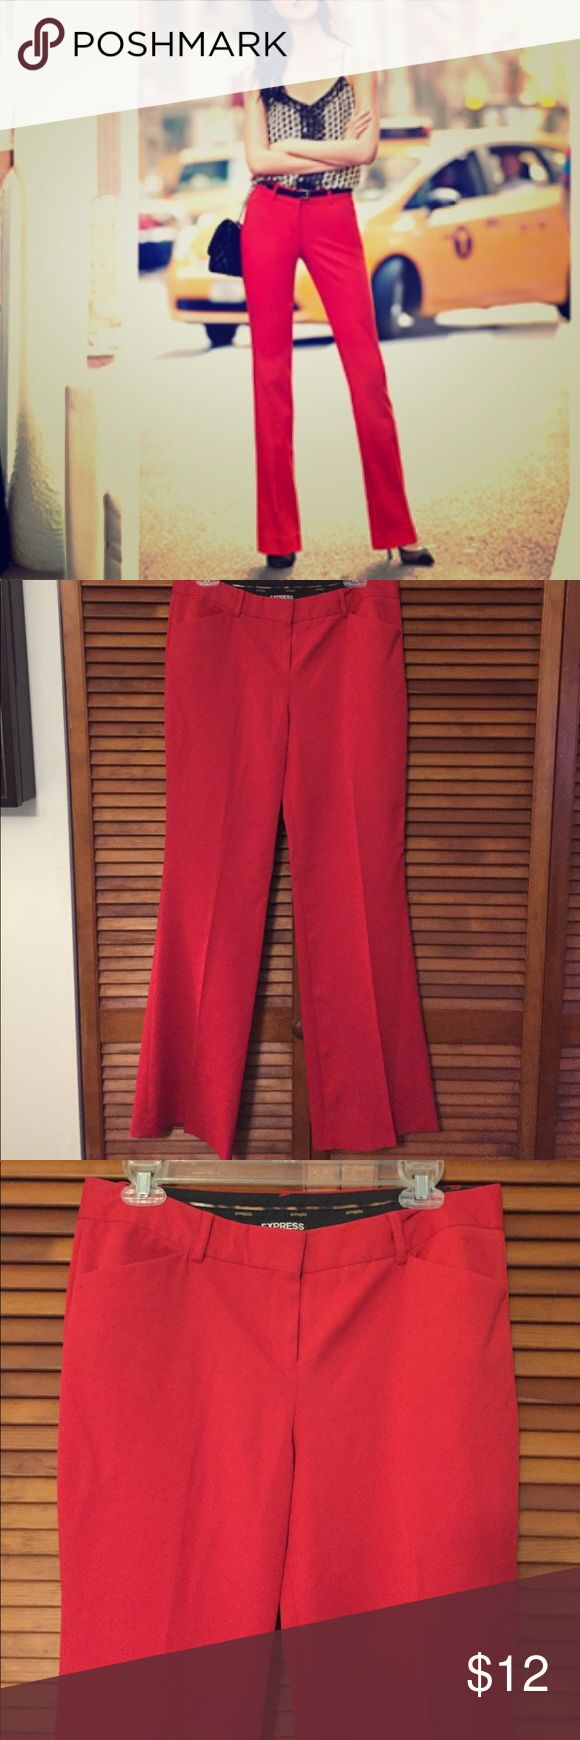 """Express Editor Red Slacks Size 8R This pair of slacks is from Express. They are the Editor fit, but the leg is wider than the normal """"barely boot"""" fit. They are great for work or going out. Size 8R. I took a picture because the hem at the bottom fell out (I find this happens with all Express pants) where I sewed it back together. Put these with a pair of black heels and you will spice up the office! Pet free, smoke free home. Express Pants Trousers"""